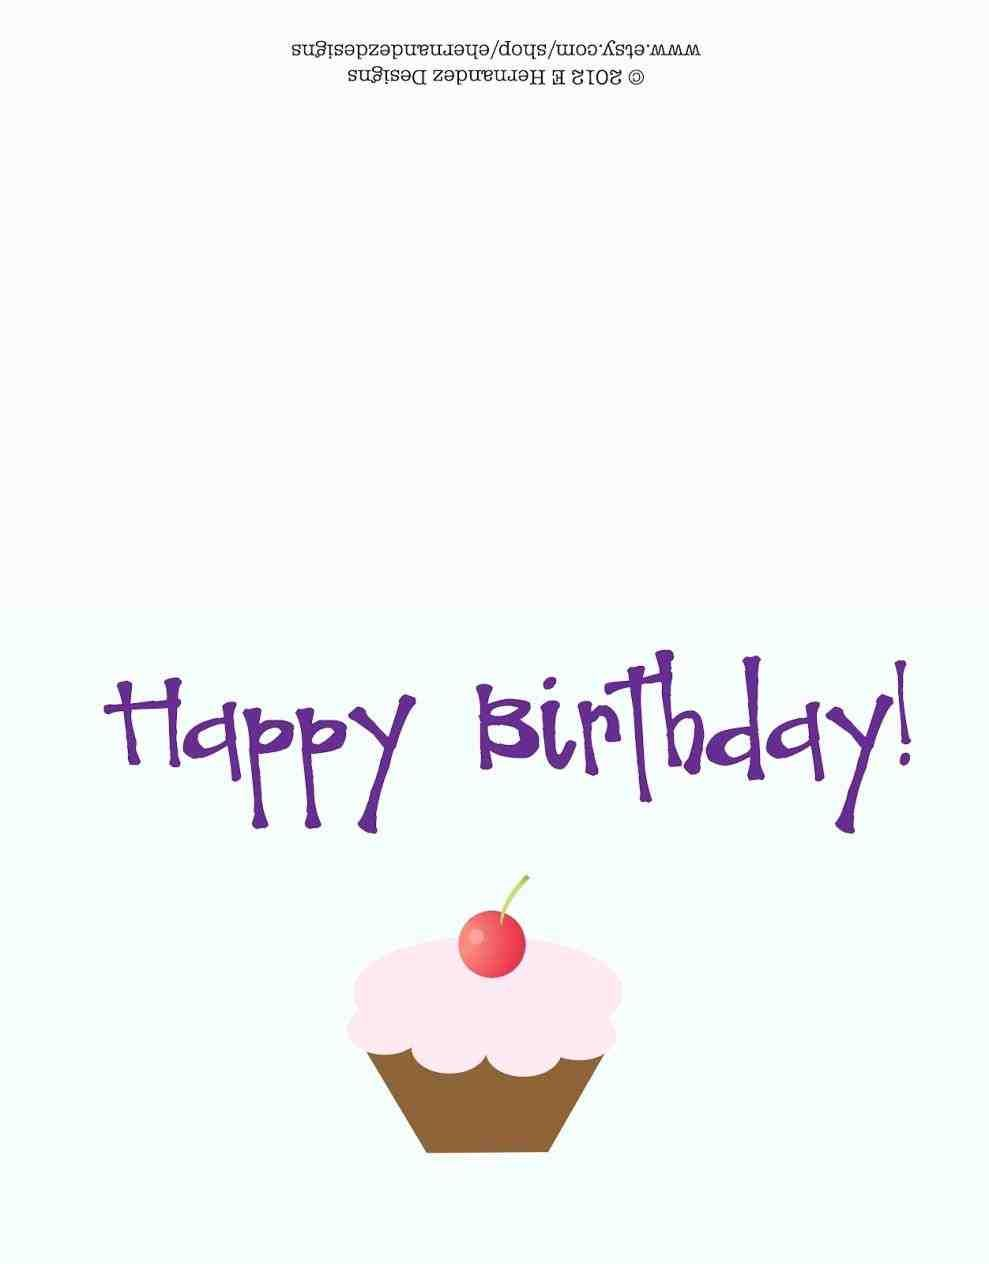 Happy Birthday Animation Free Download Clip Art Free Clip Art, Birthday Card.  Download Free  Happy Birthday Card Template Free Download